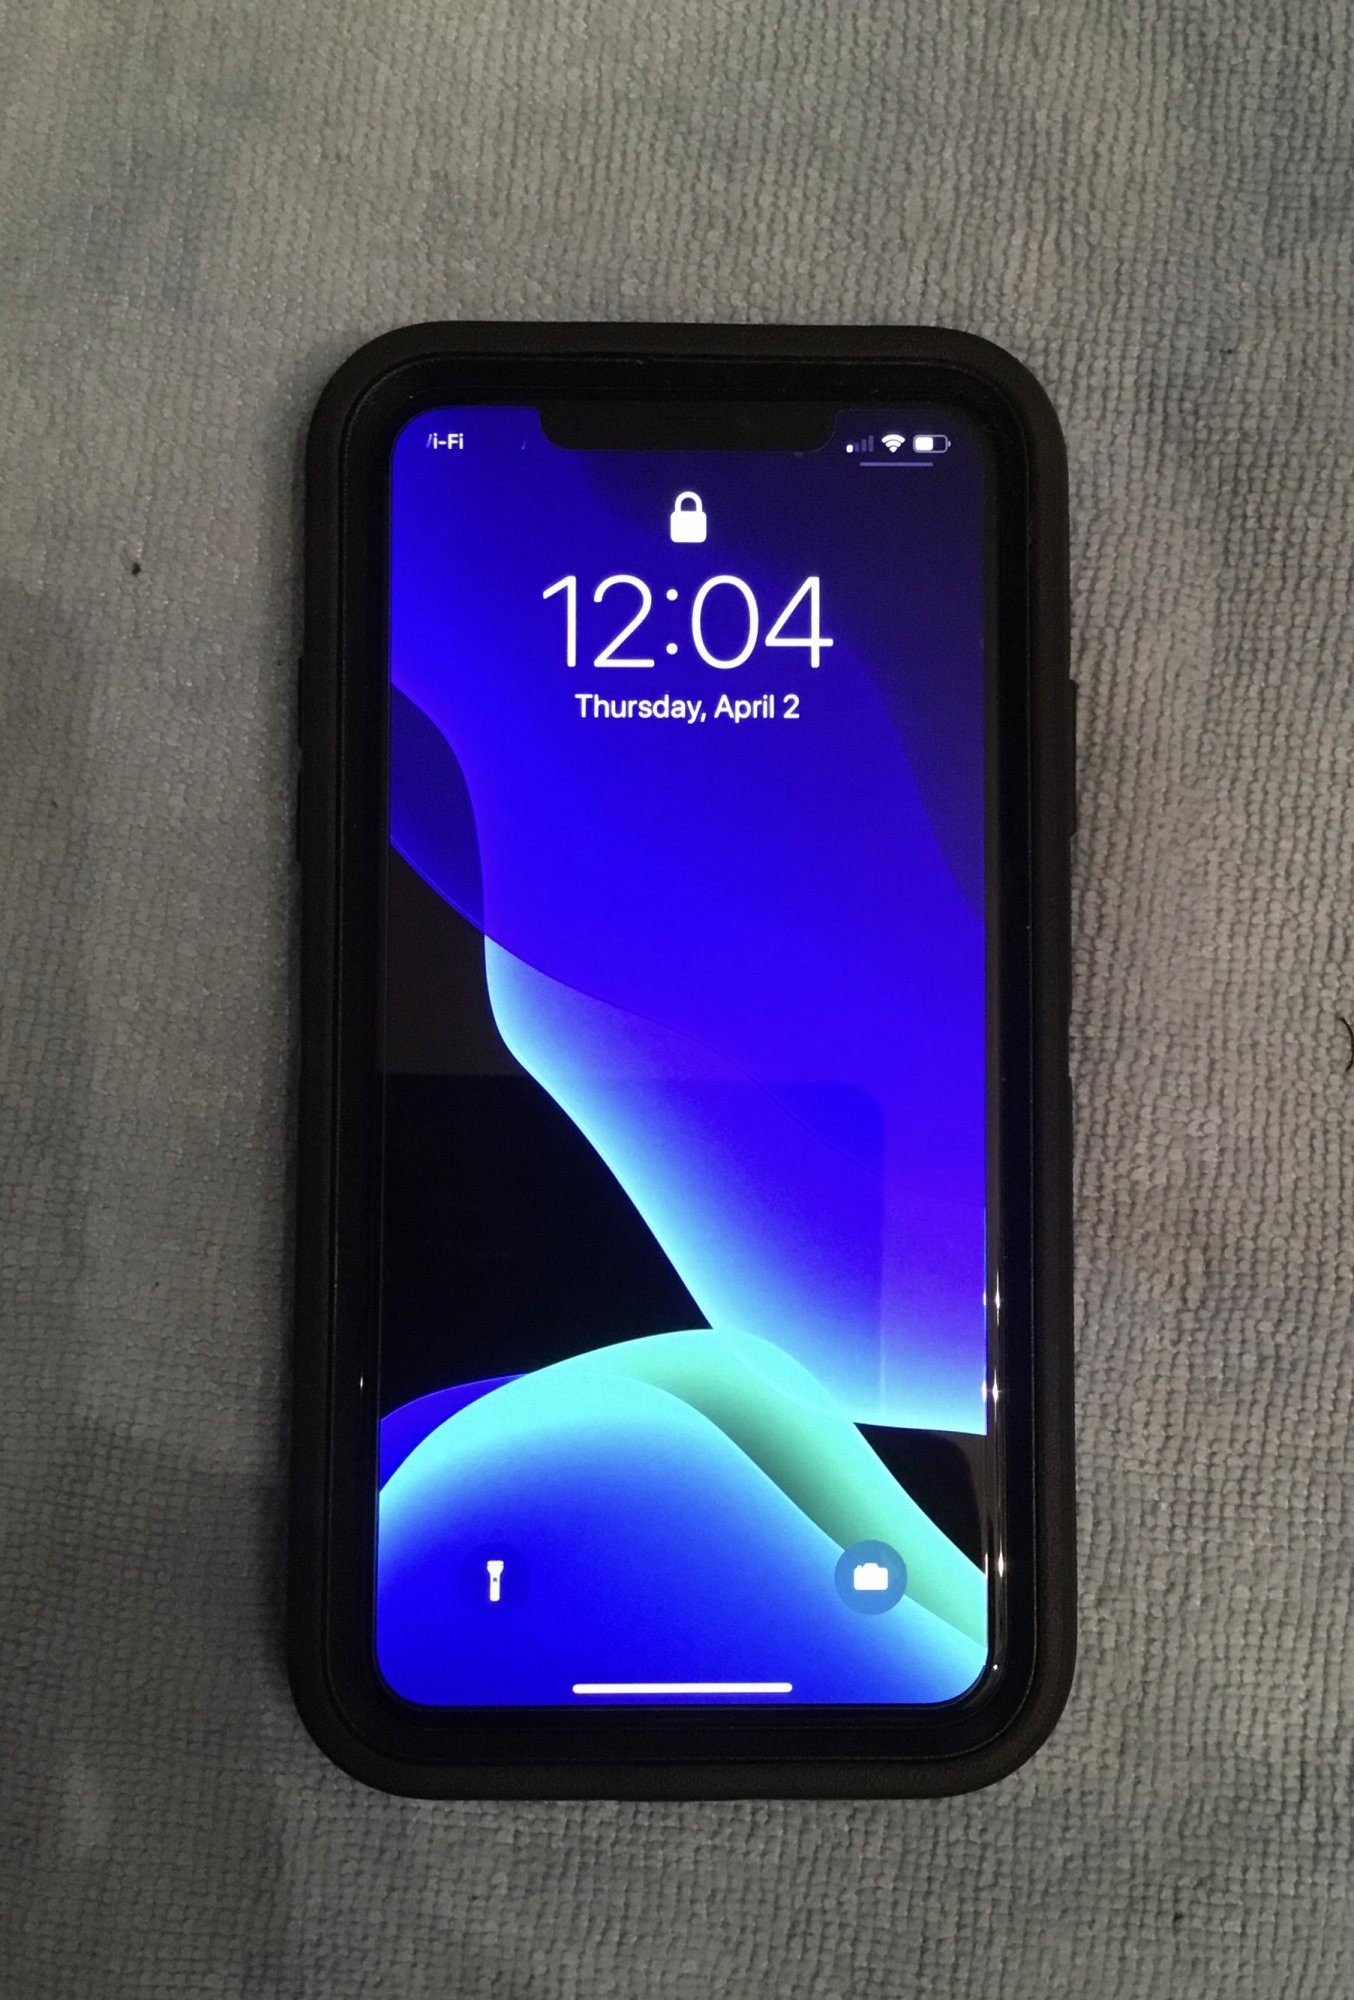 how much is an iphone 11 pro max worth if the back glass cracked